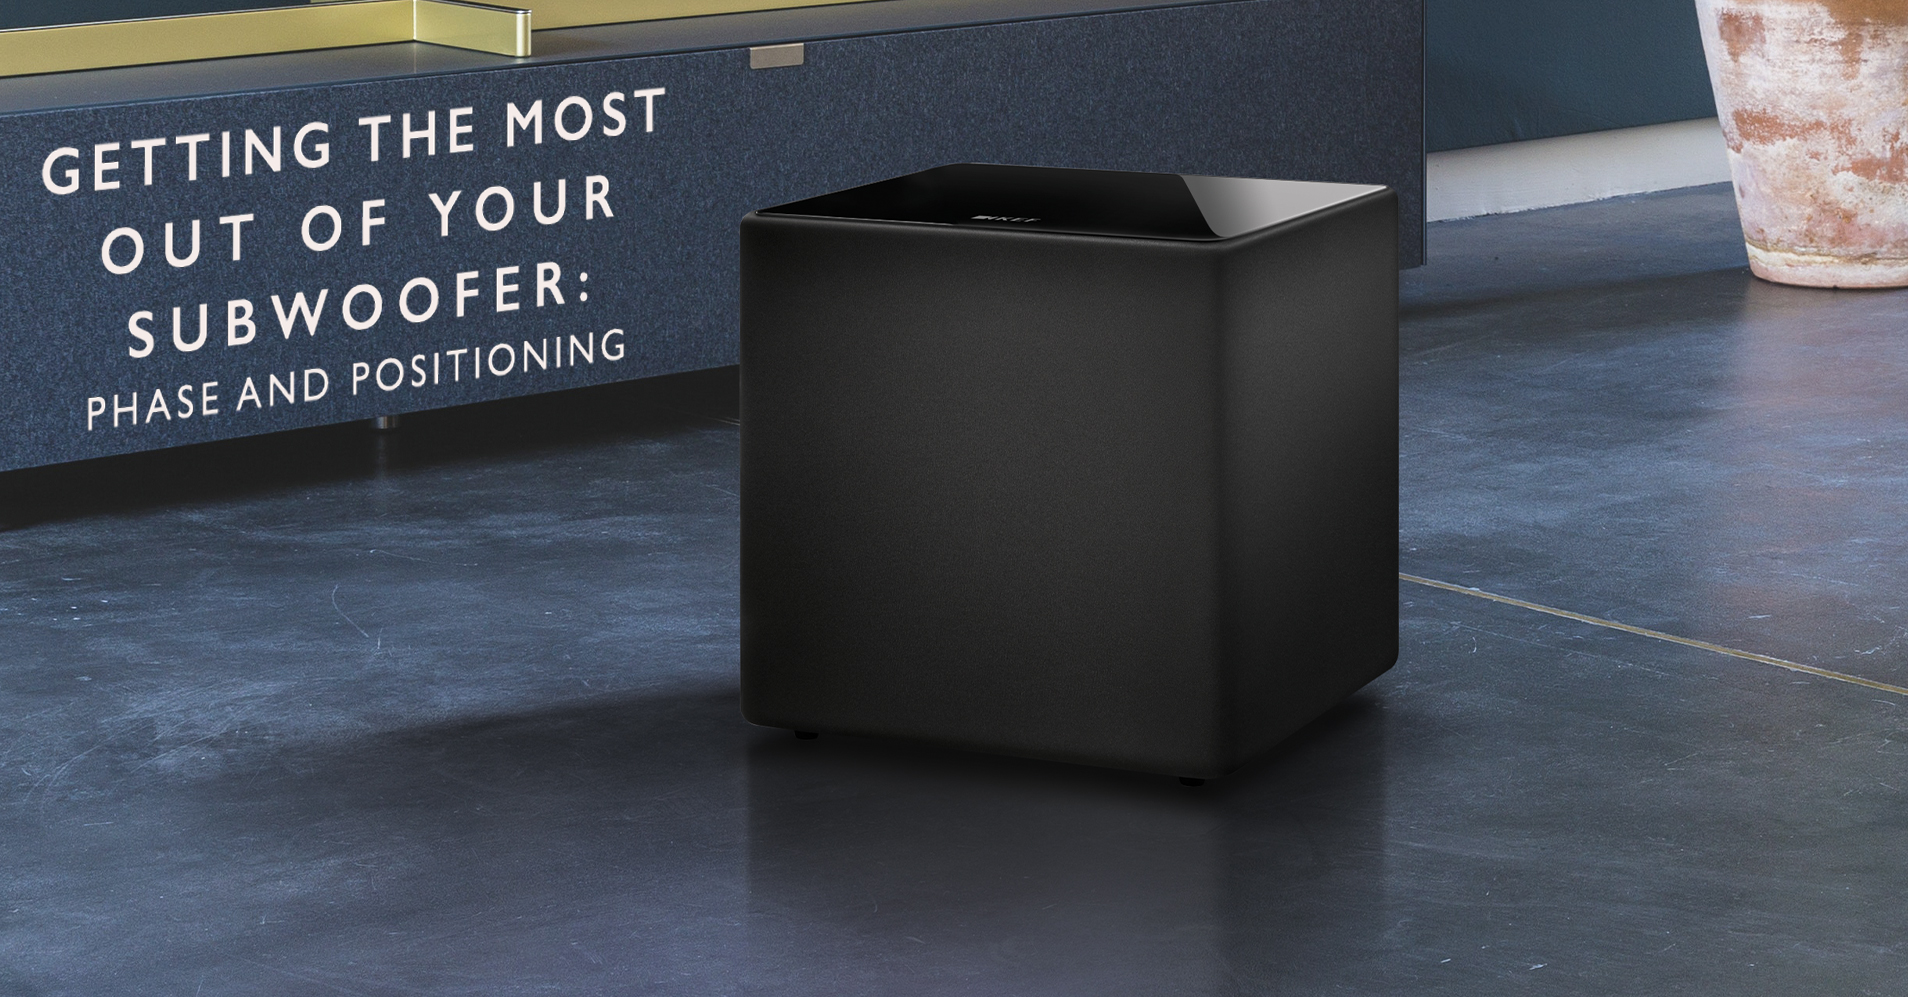 Phase and Positioning: Helpful Hints For Getting the Most Out of Your Subwoofer